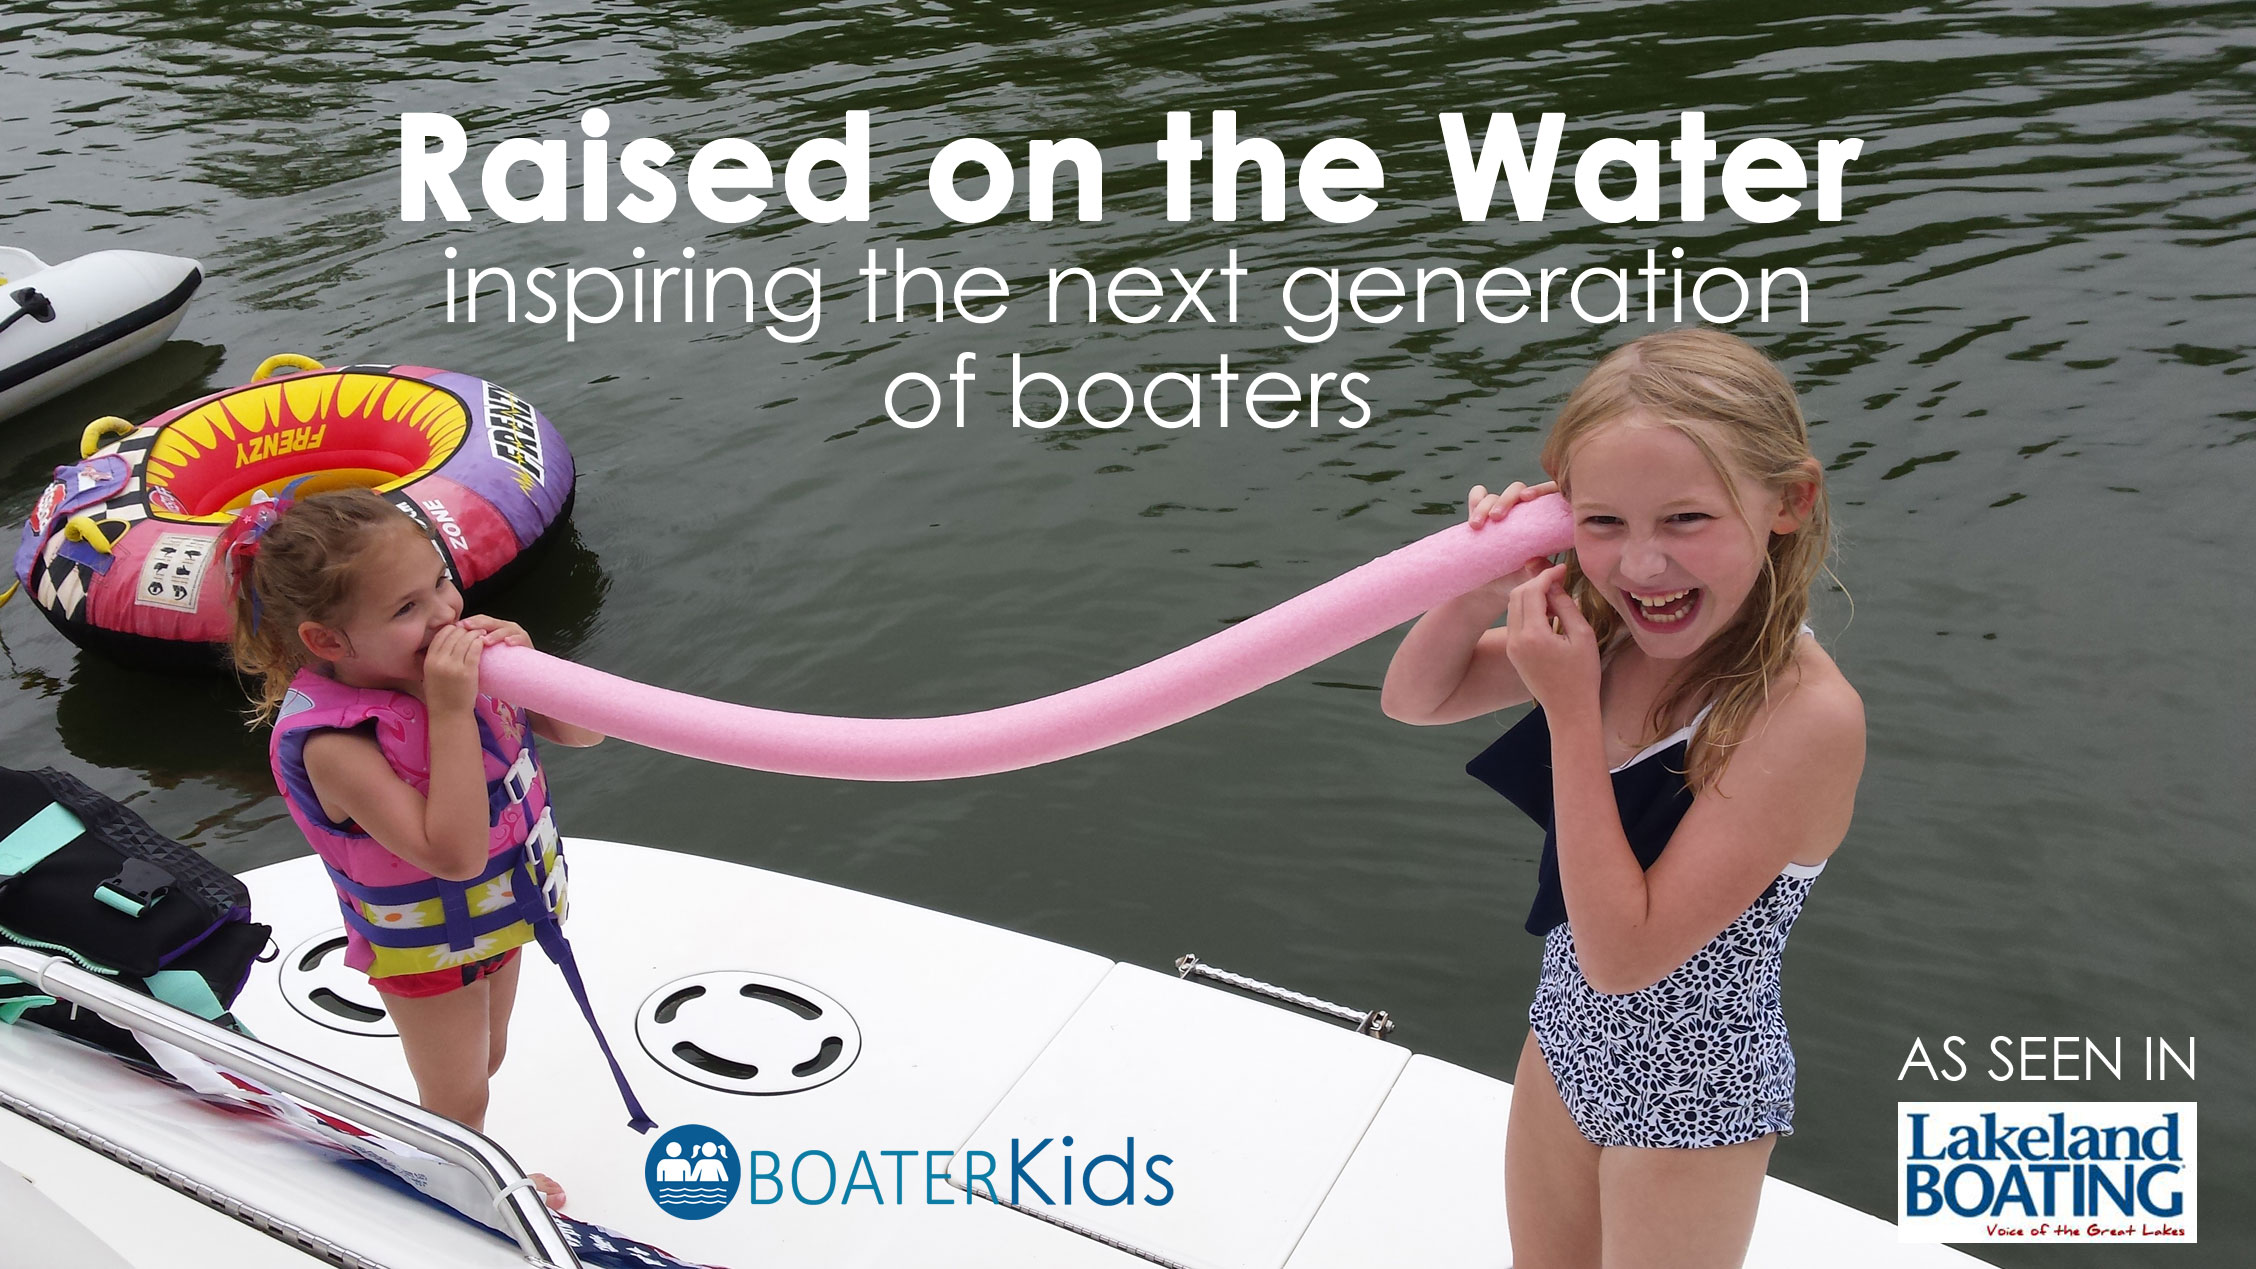 Next Generation boaters